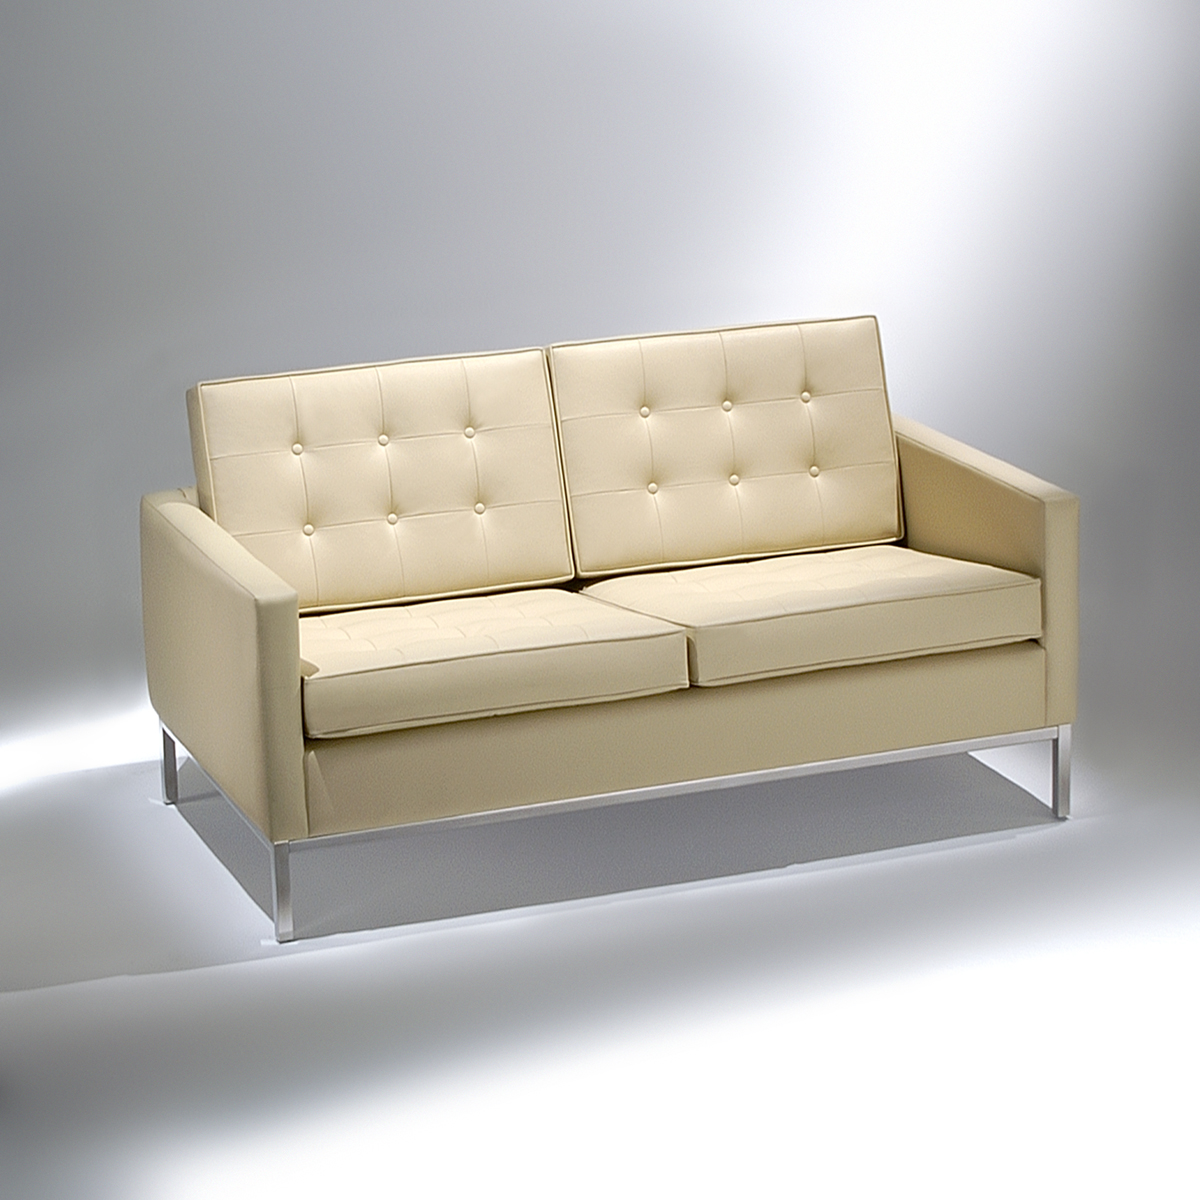 Sof fk1 2 lugares novo ambiente cat logo for Sofa 1 80 largura